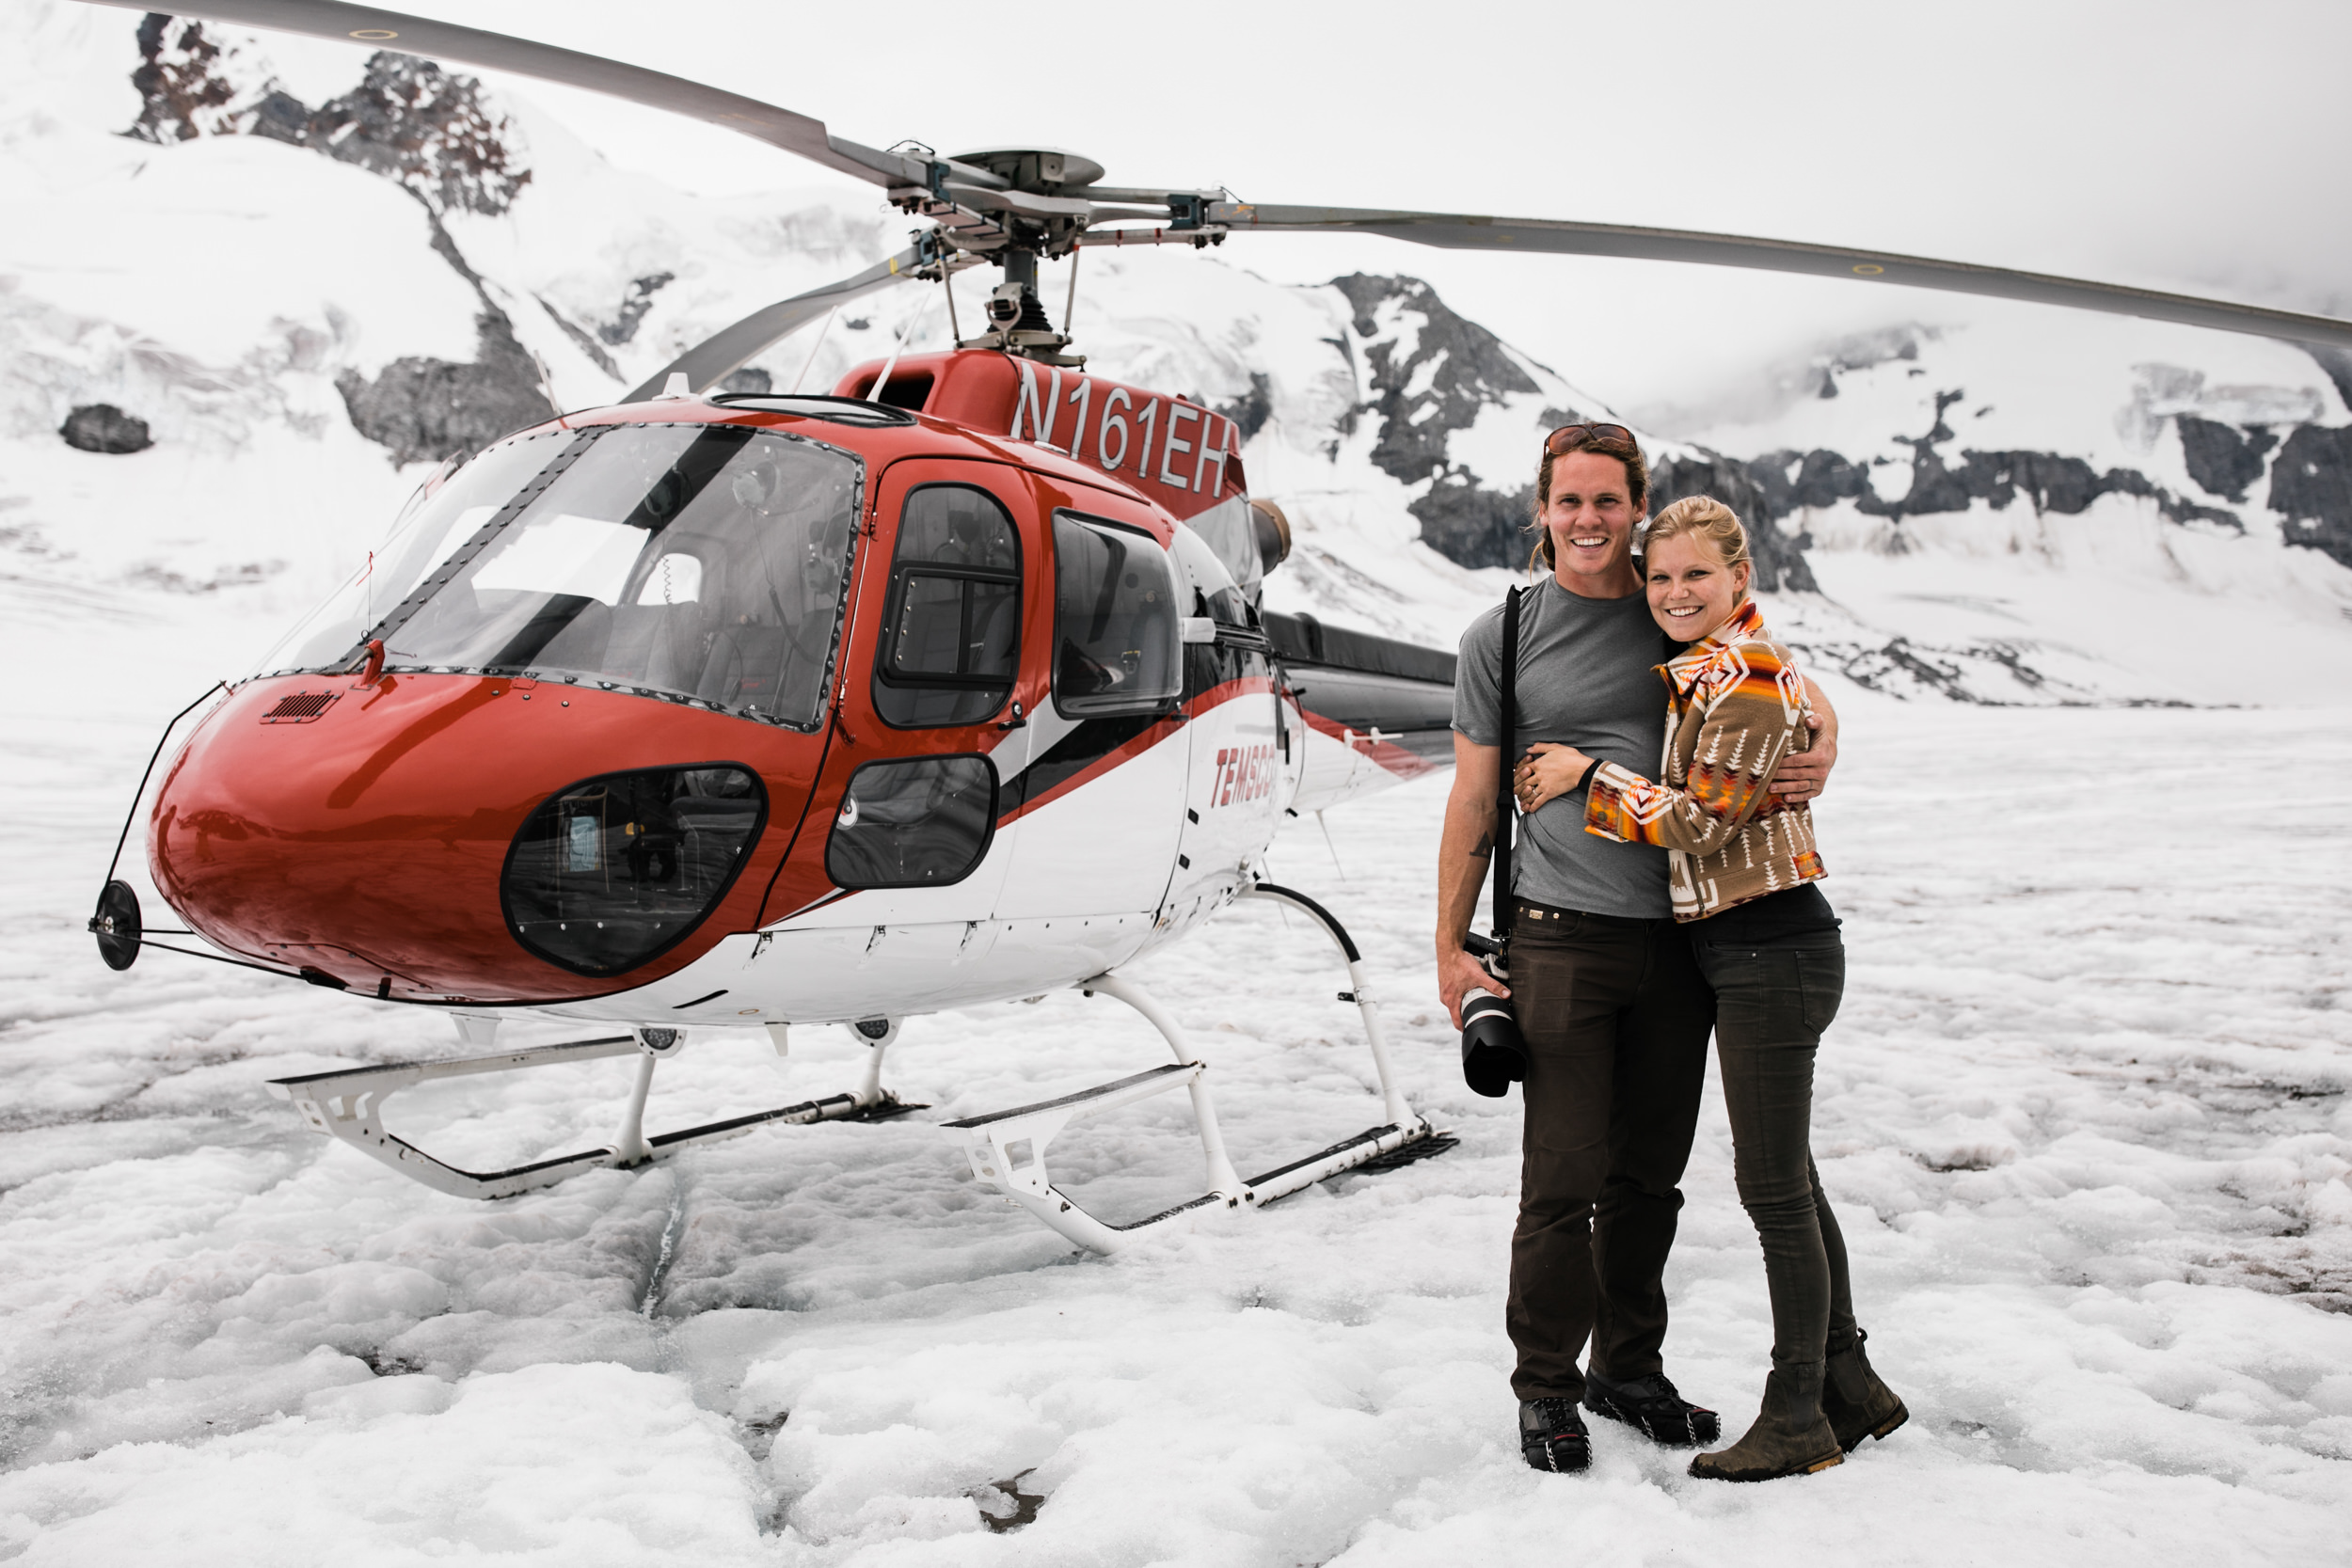 Aerial Photography from Helicopters and Airplanes | How to get epic photos on your flight seeing tour in Denali National Park, Alaska | The Hearnes Adventure Photography